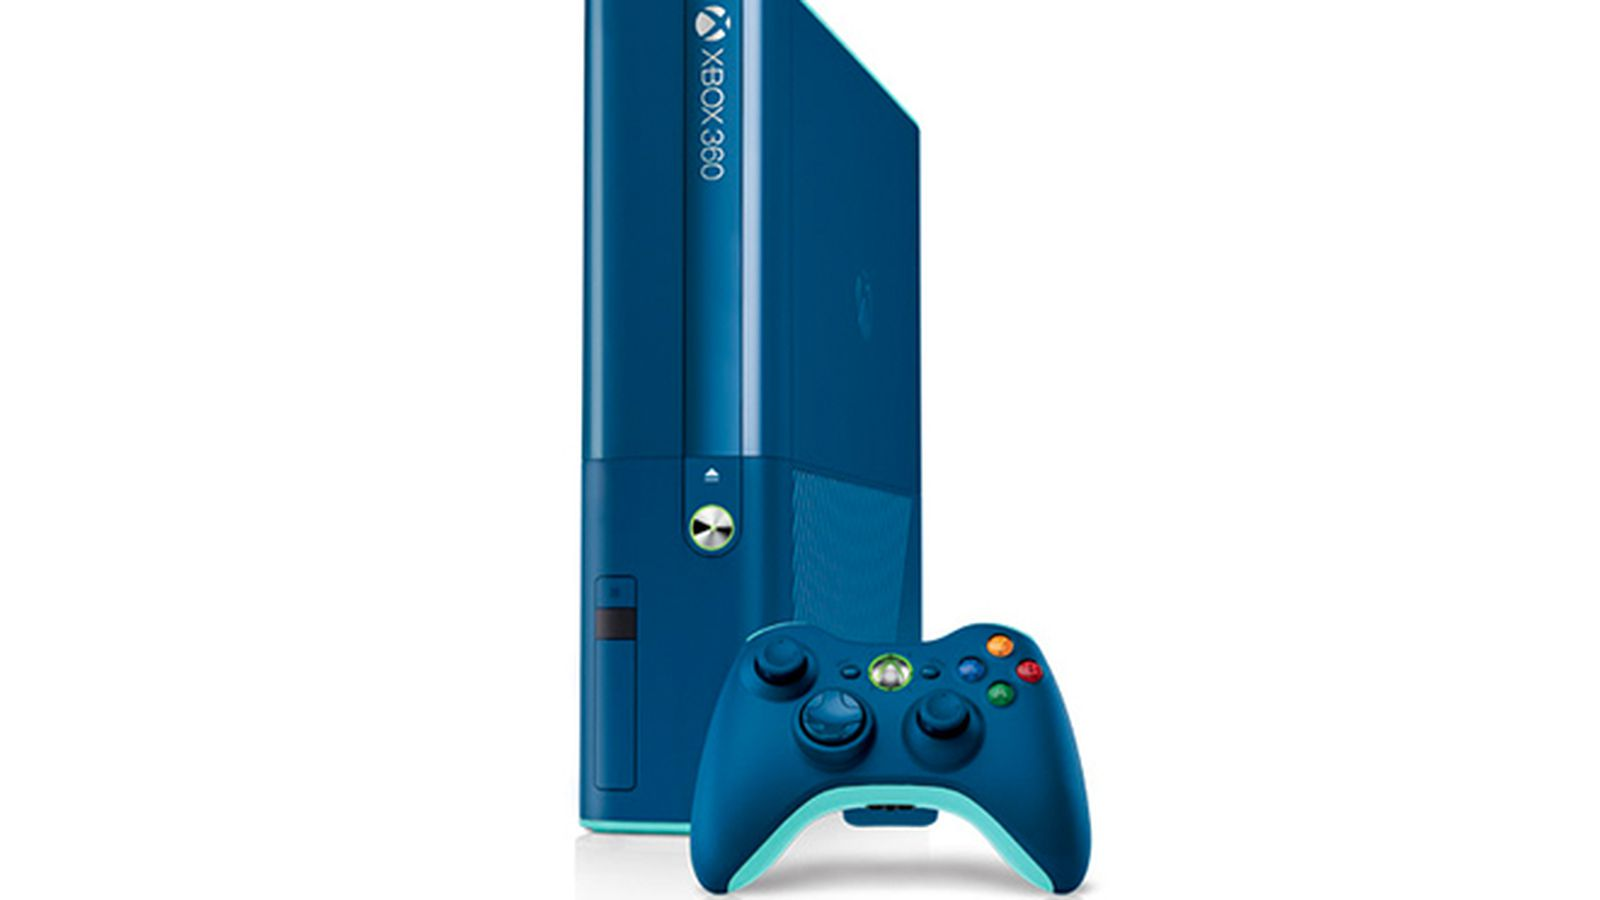 Microsoft revives its Xbox 360 with new blue console ...